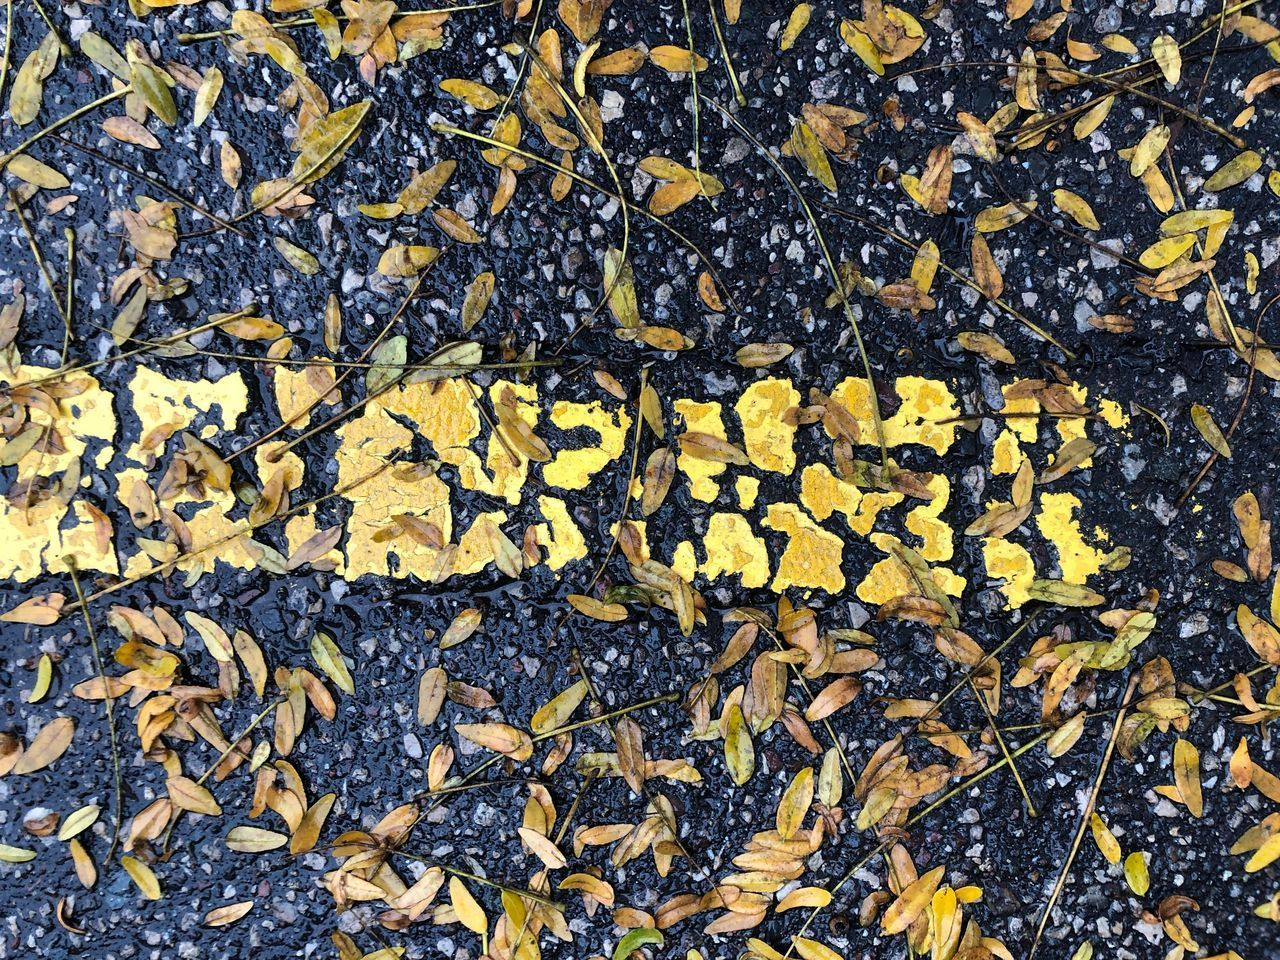 HIGH ANGLE VIEW OF DRY LEAVES ON THE GROUND